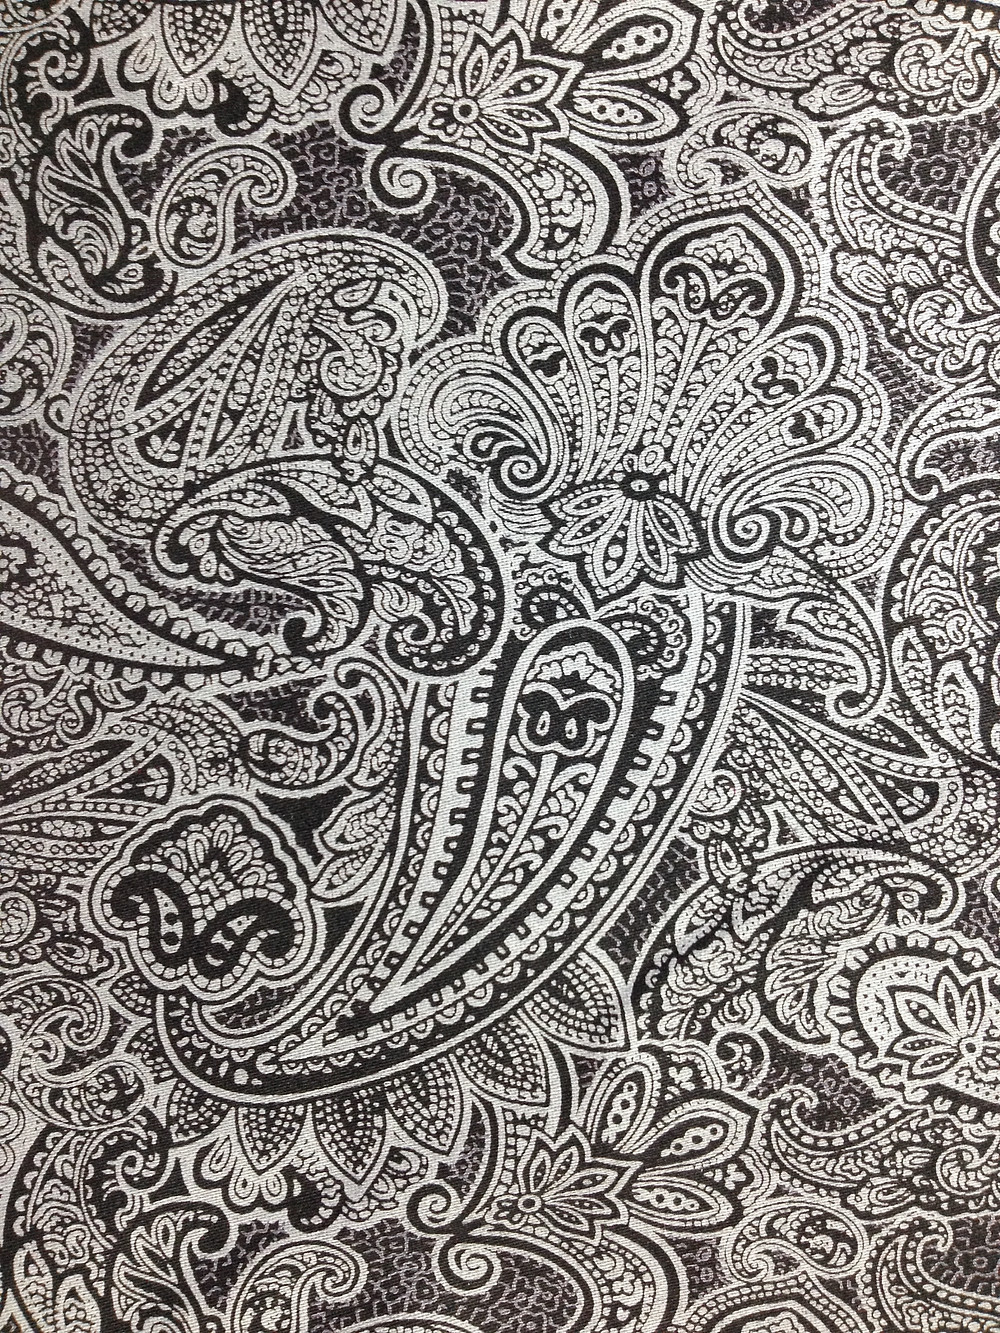 More of that glorious paisley fabric